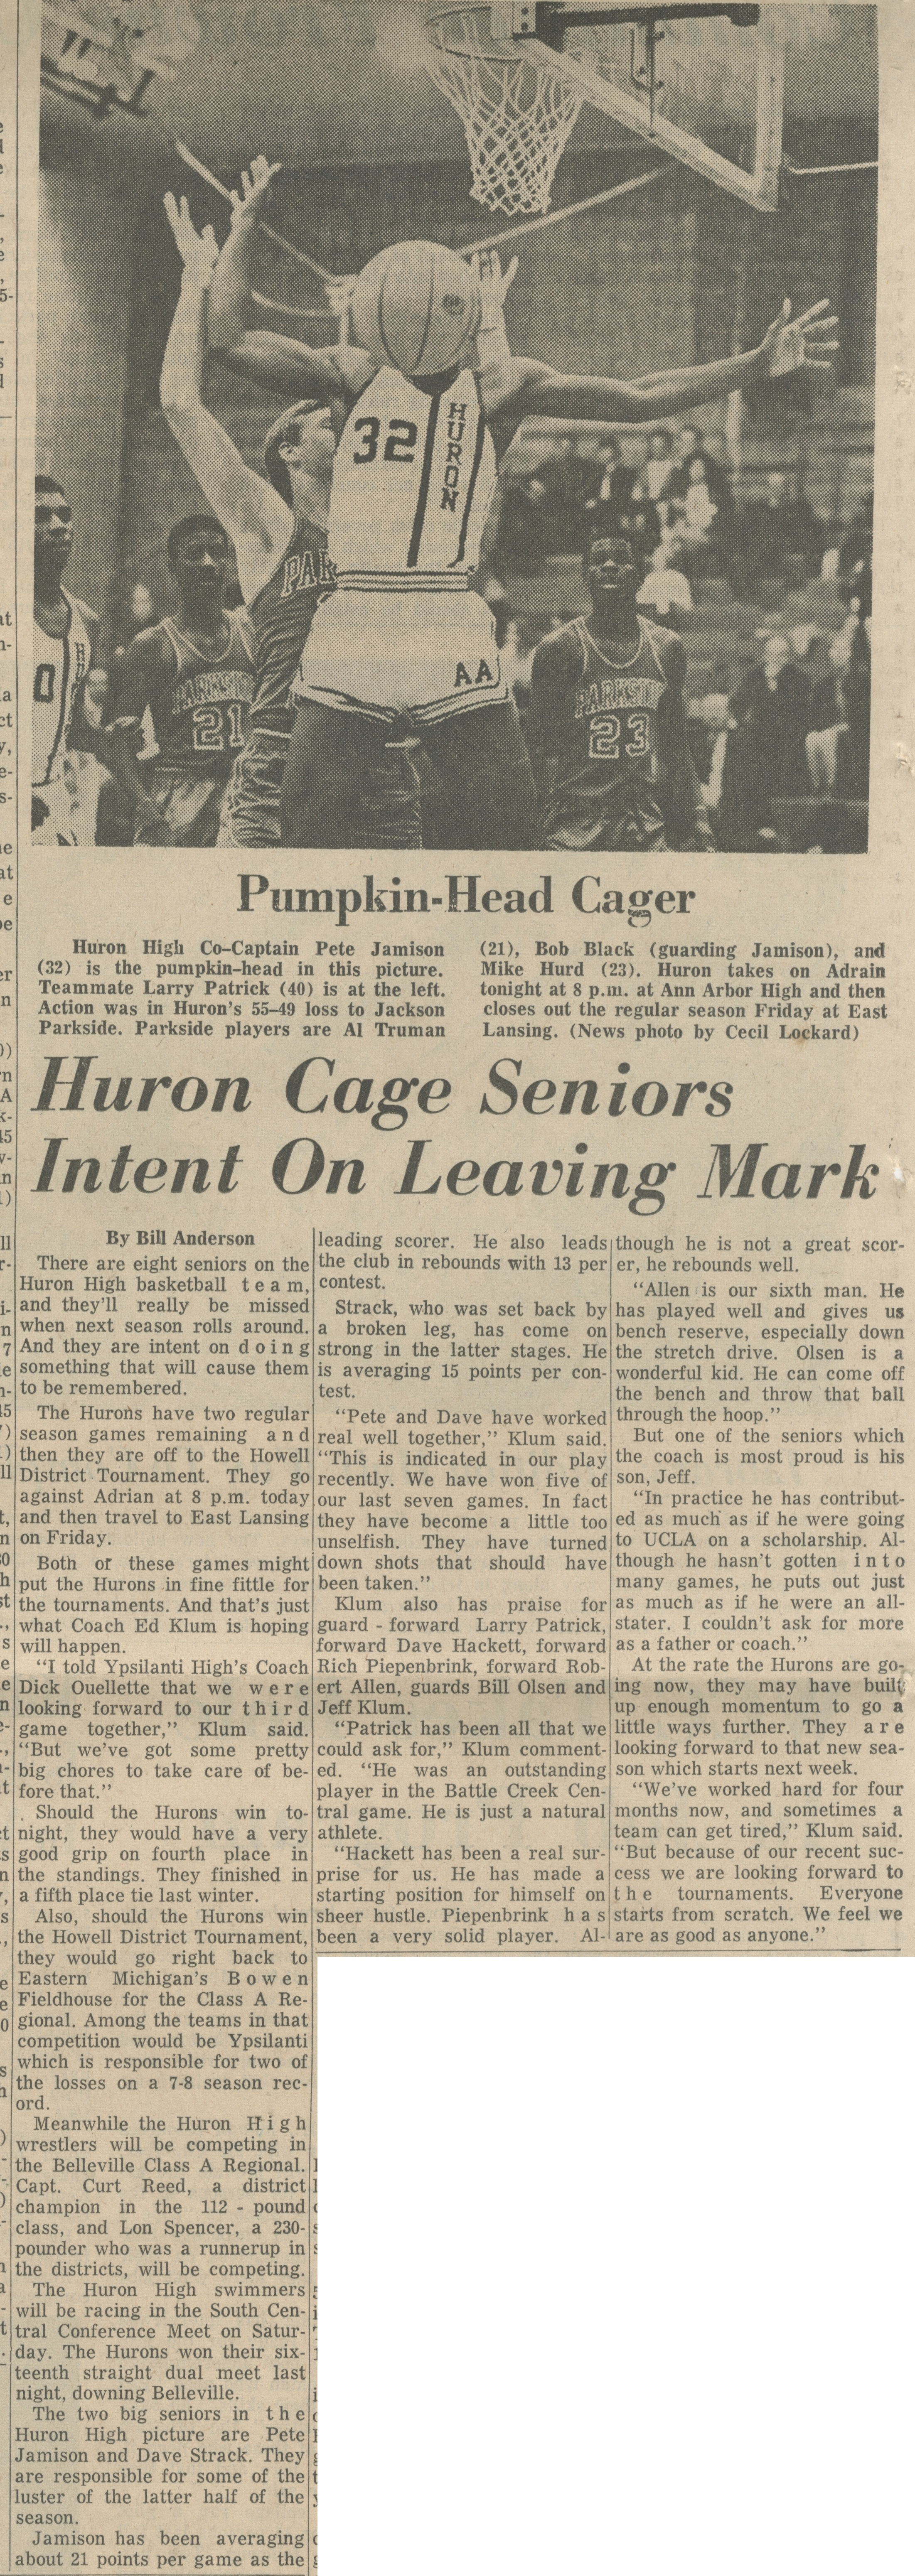 Huron Cage Seniors Intent On Leaving Mark image